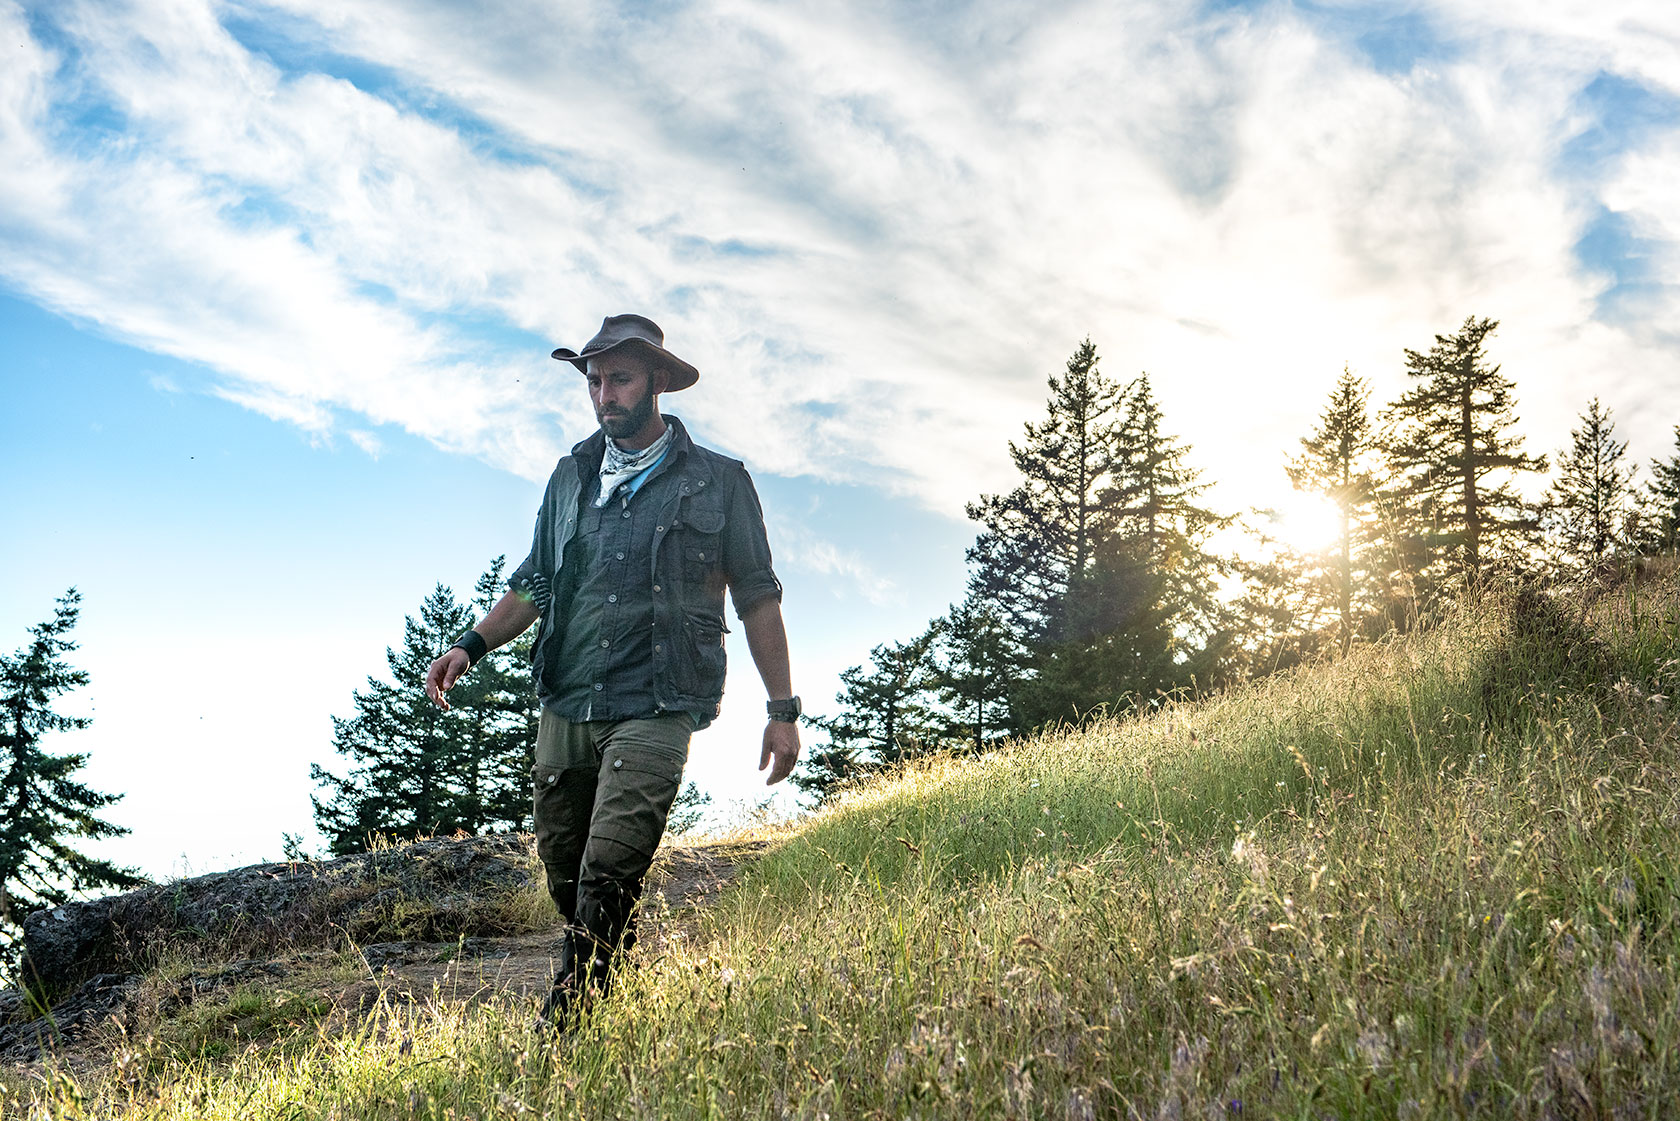 austin-trigg-brave-wilderness-orcas-island-coyote-peterson-meadow-sunset.jpg